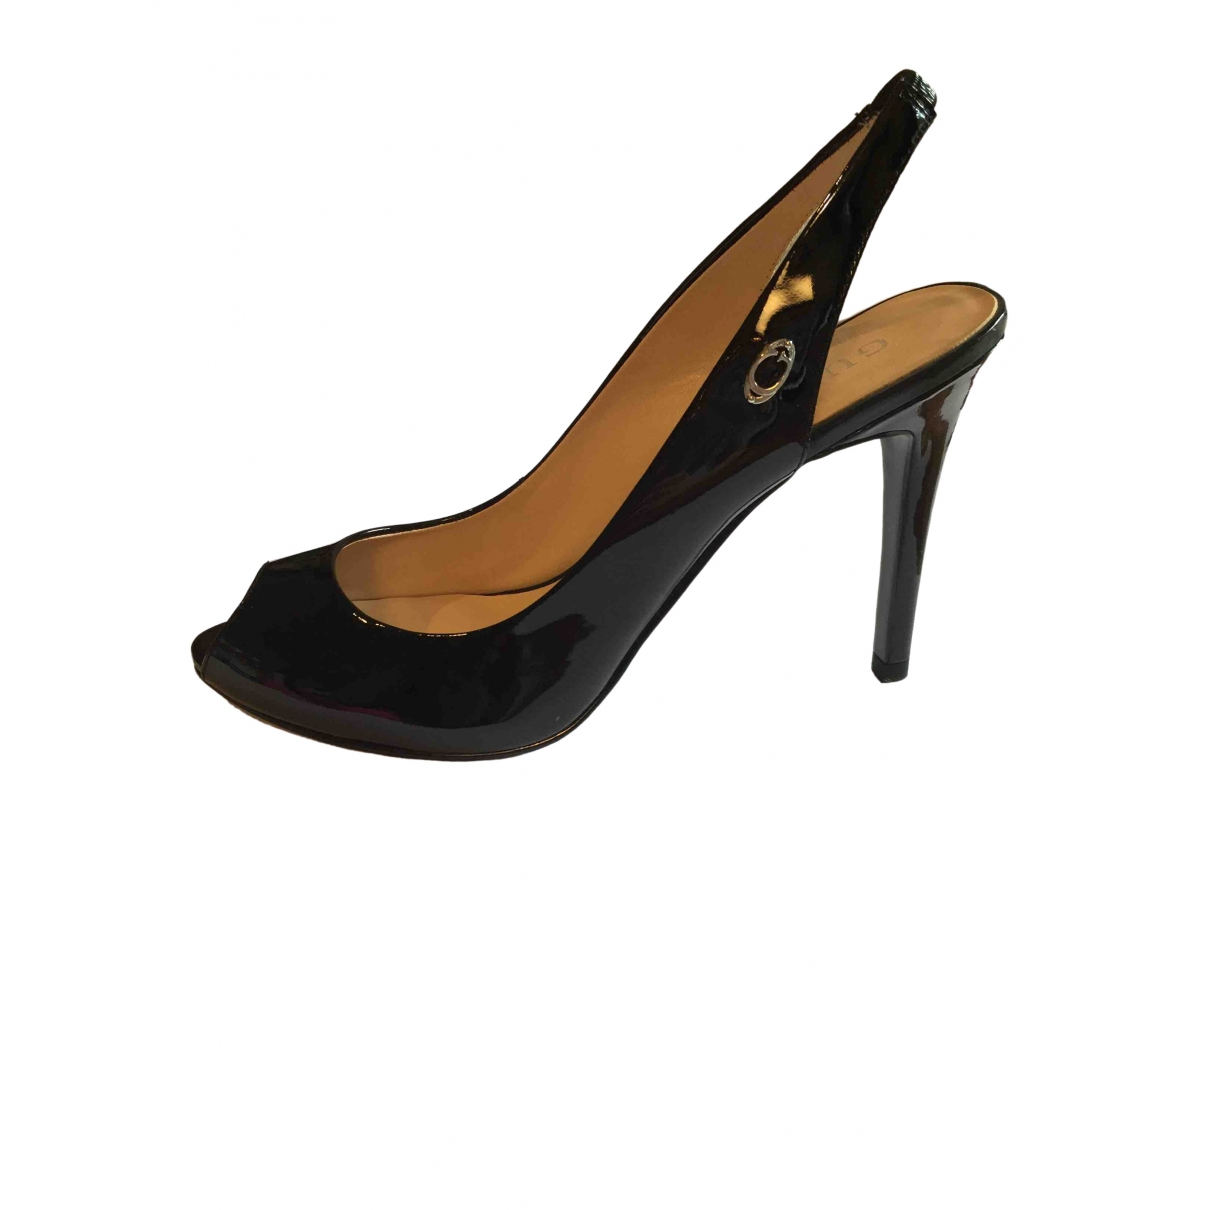 Guess \N Black Patent leather Heels for Women 39 EU